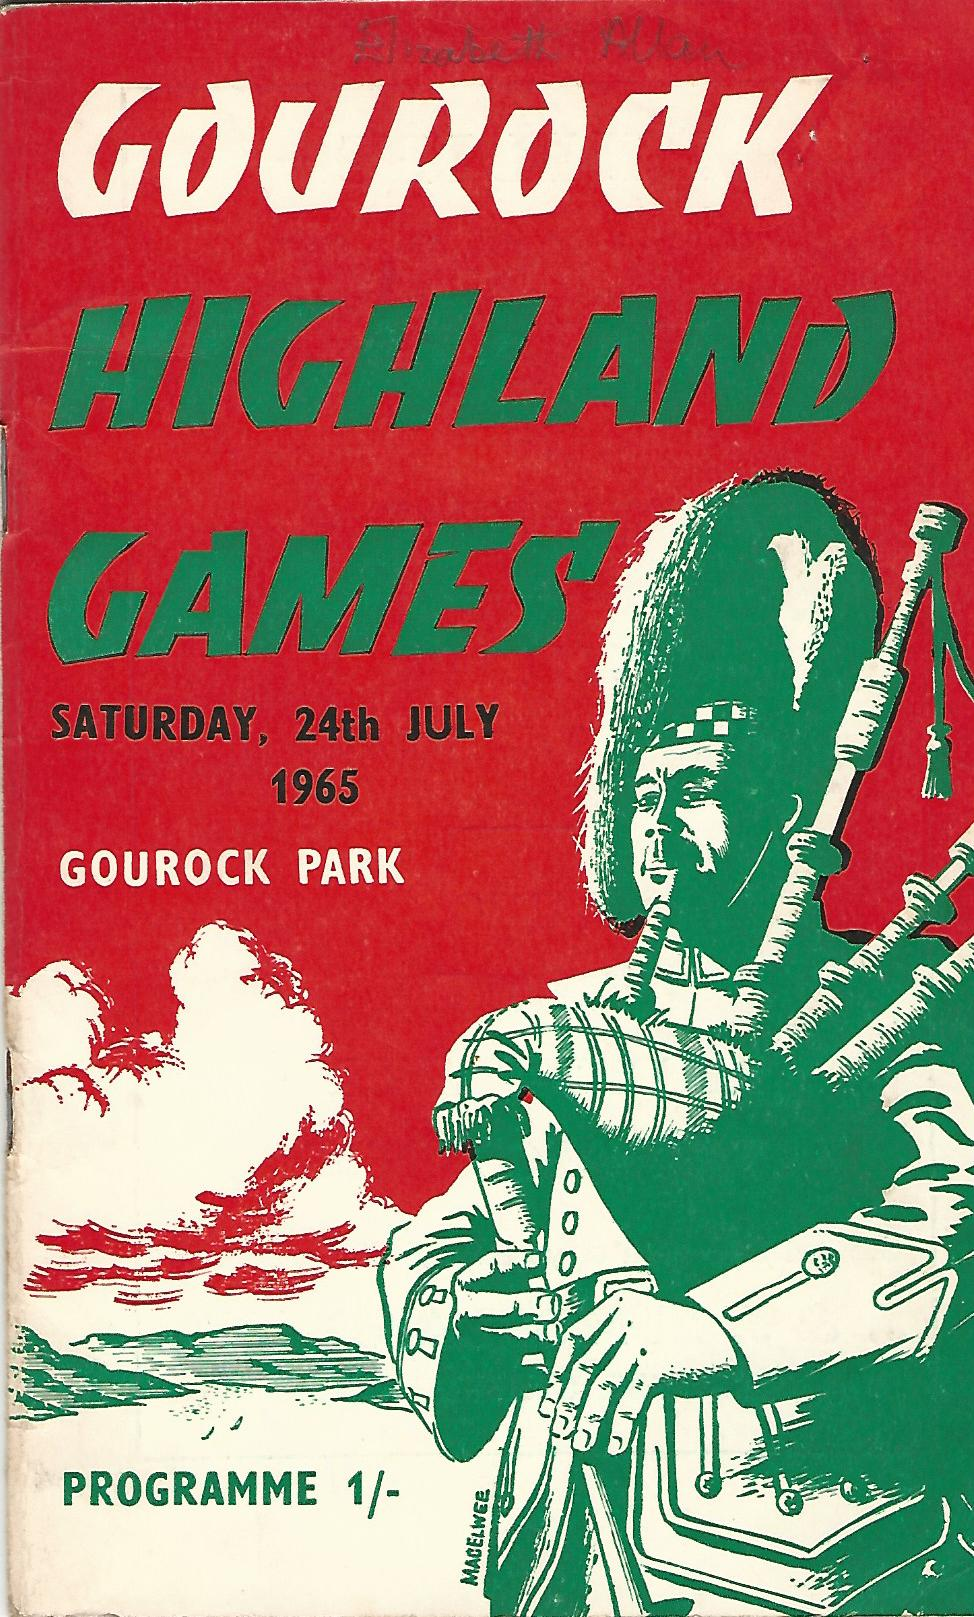 Image for Gourock Highland Games Saturday, 24th July 1965.